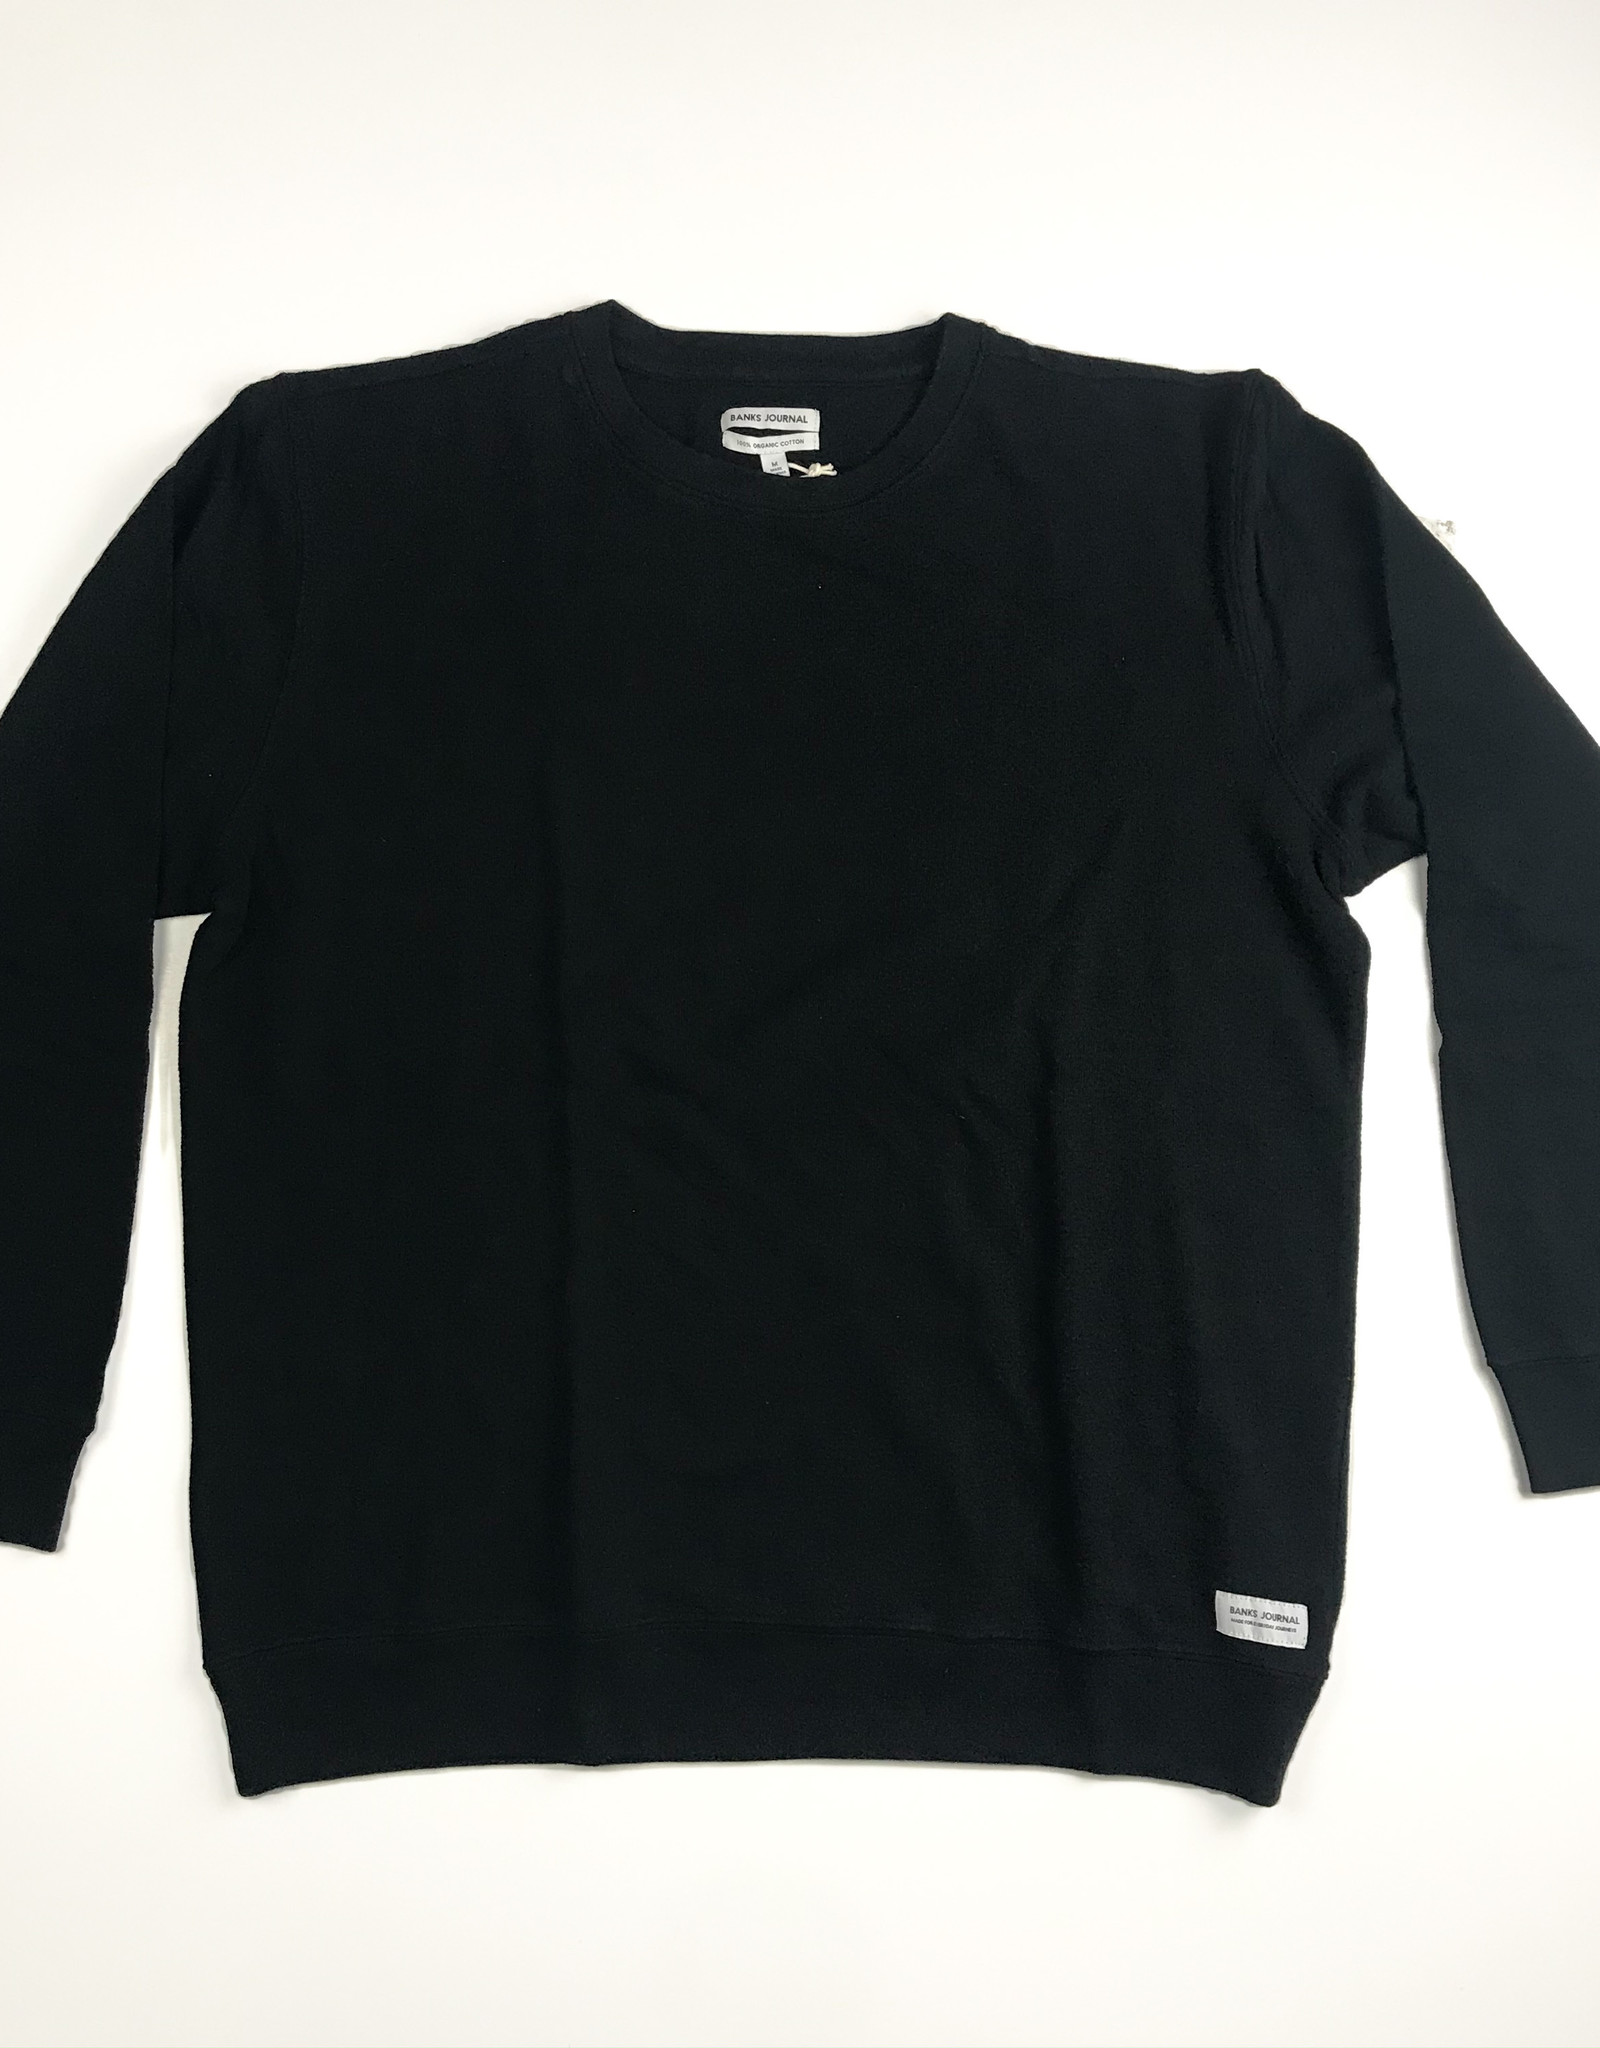 BANKS JOURNAL BANKS VISION TRANSSEASONAL L/S FLEECE